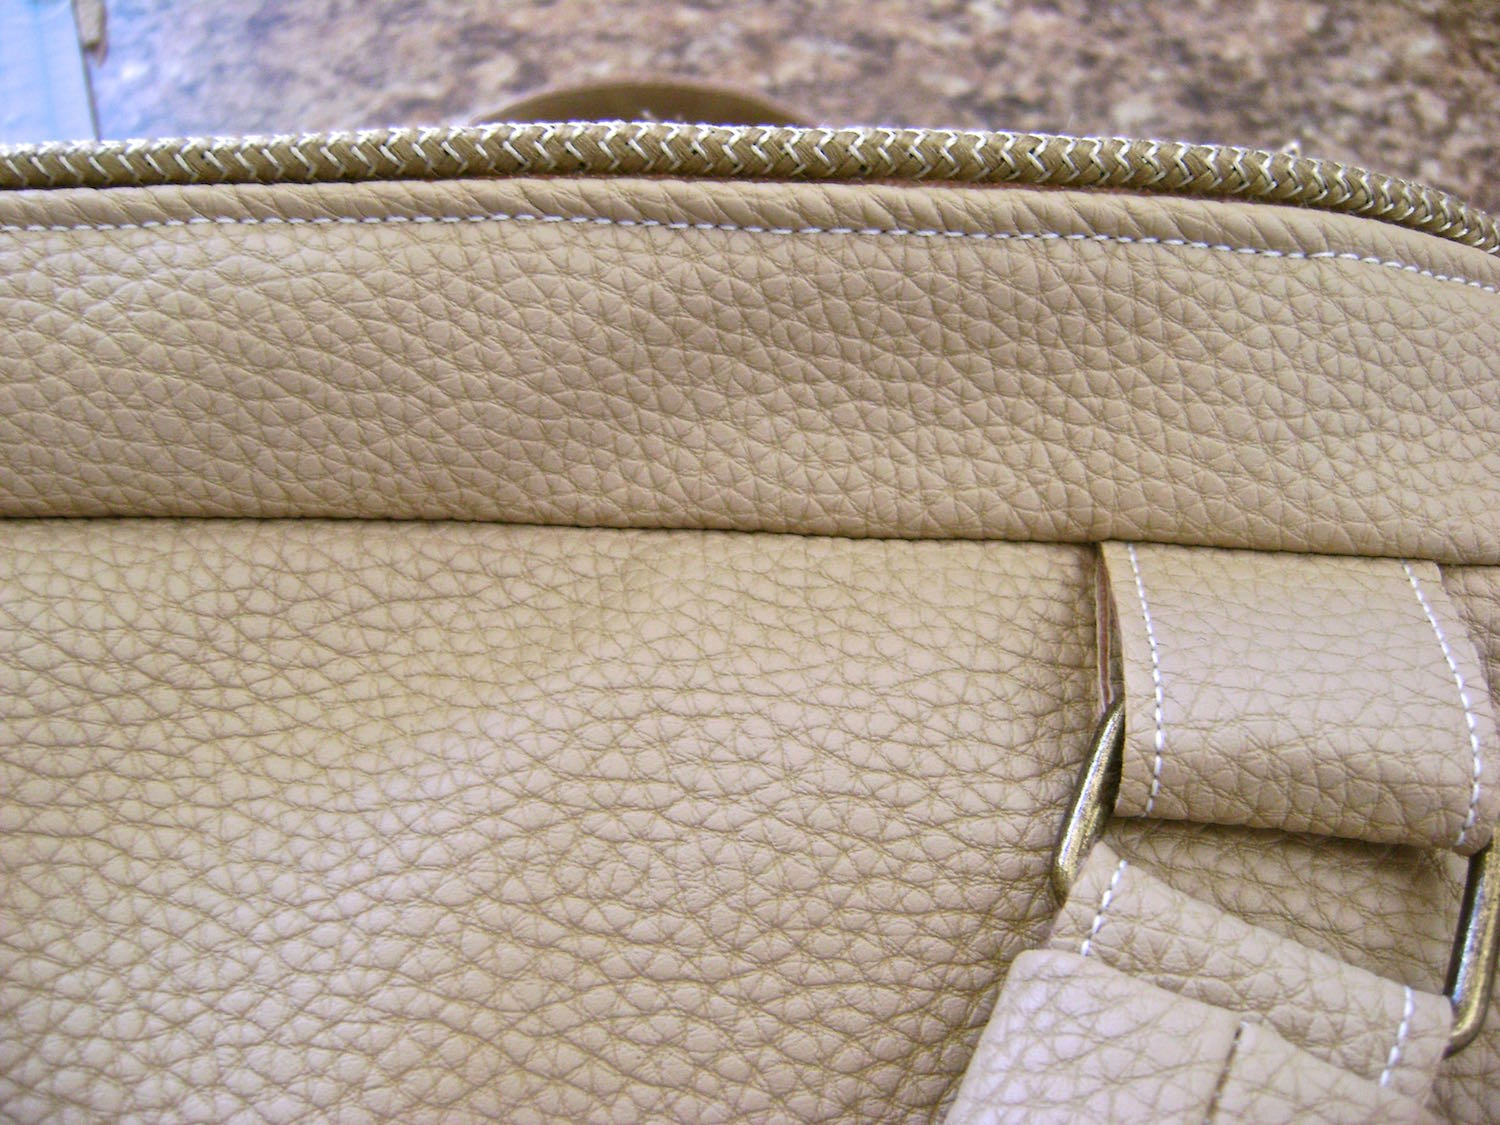 step 30 - With the four tabs in place, sew the raw edges of one band and fleece around the top of the bag.